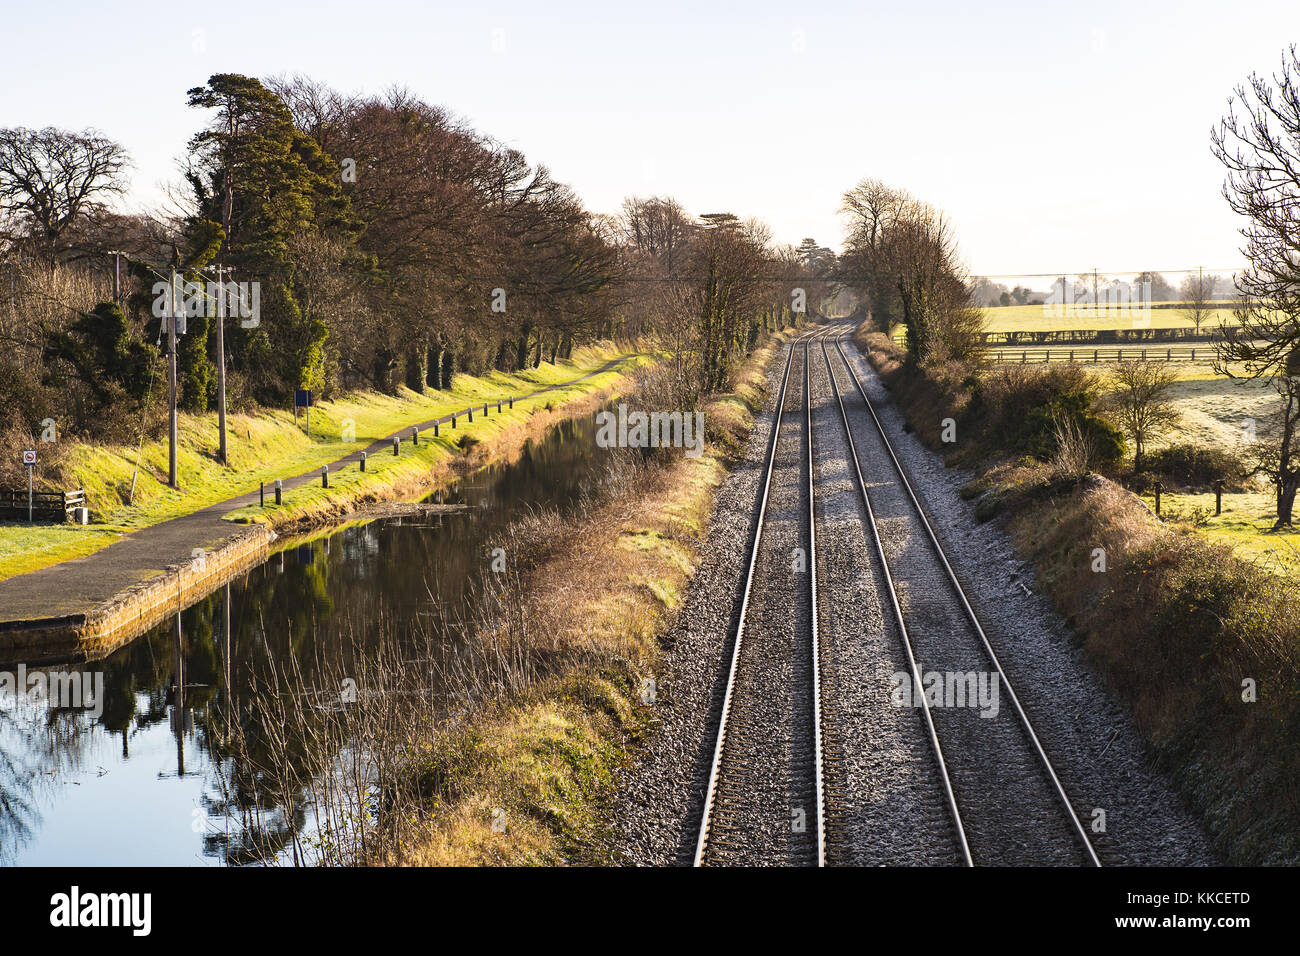 Dart rail track running by the Royal Canal in Maynooth, County Kildare, Ireland - Stock Image